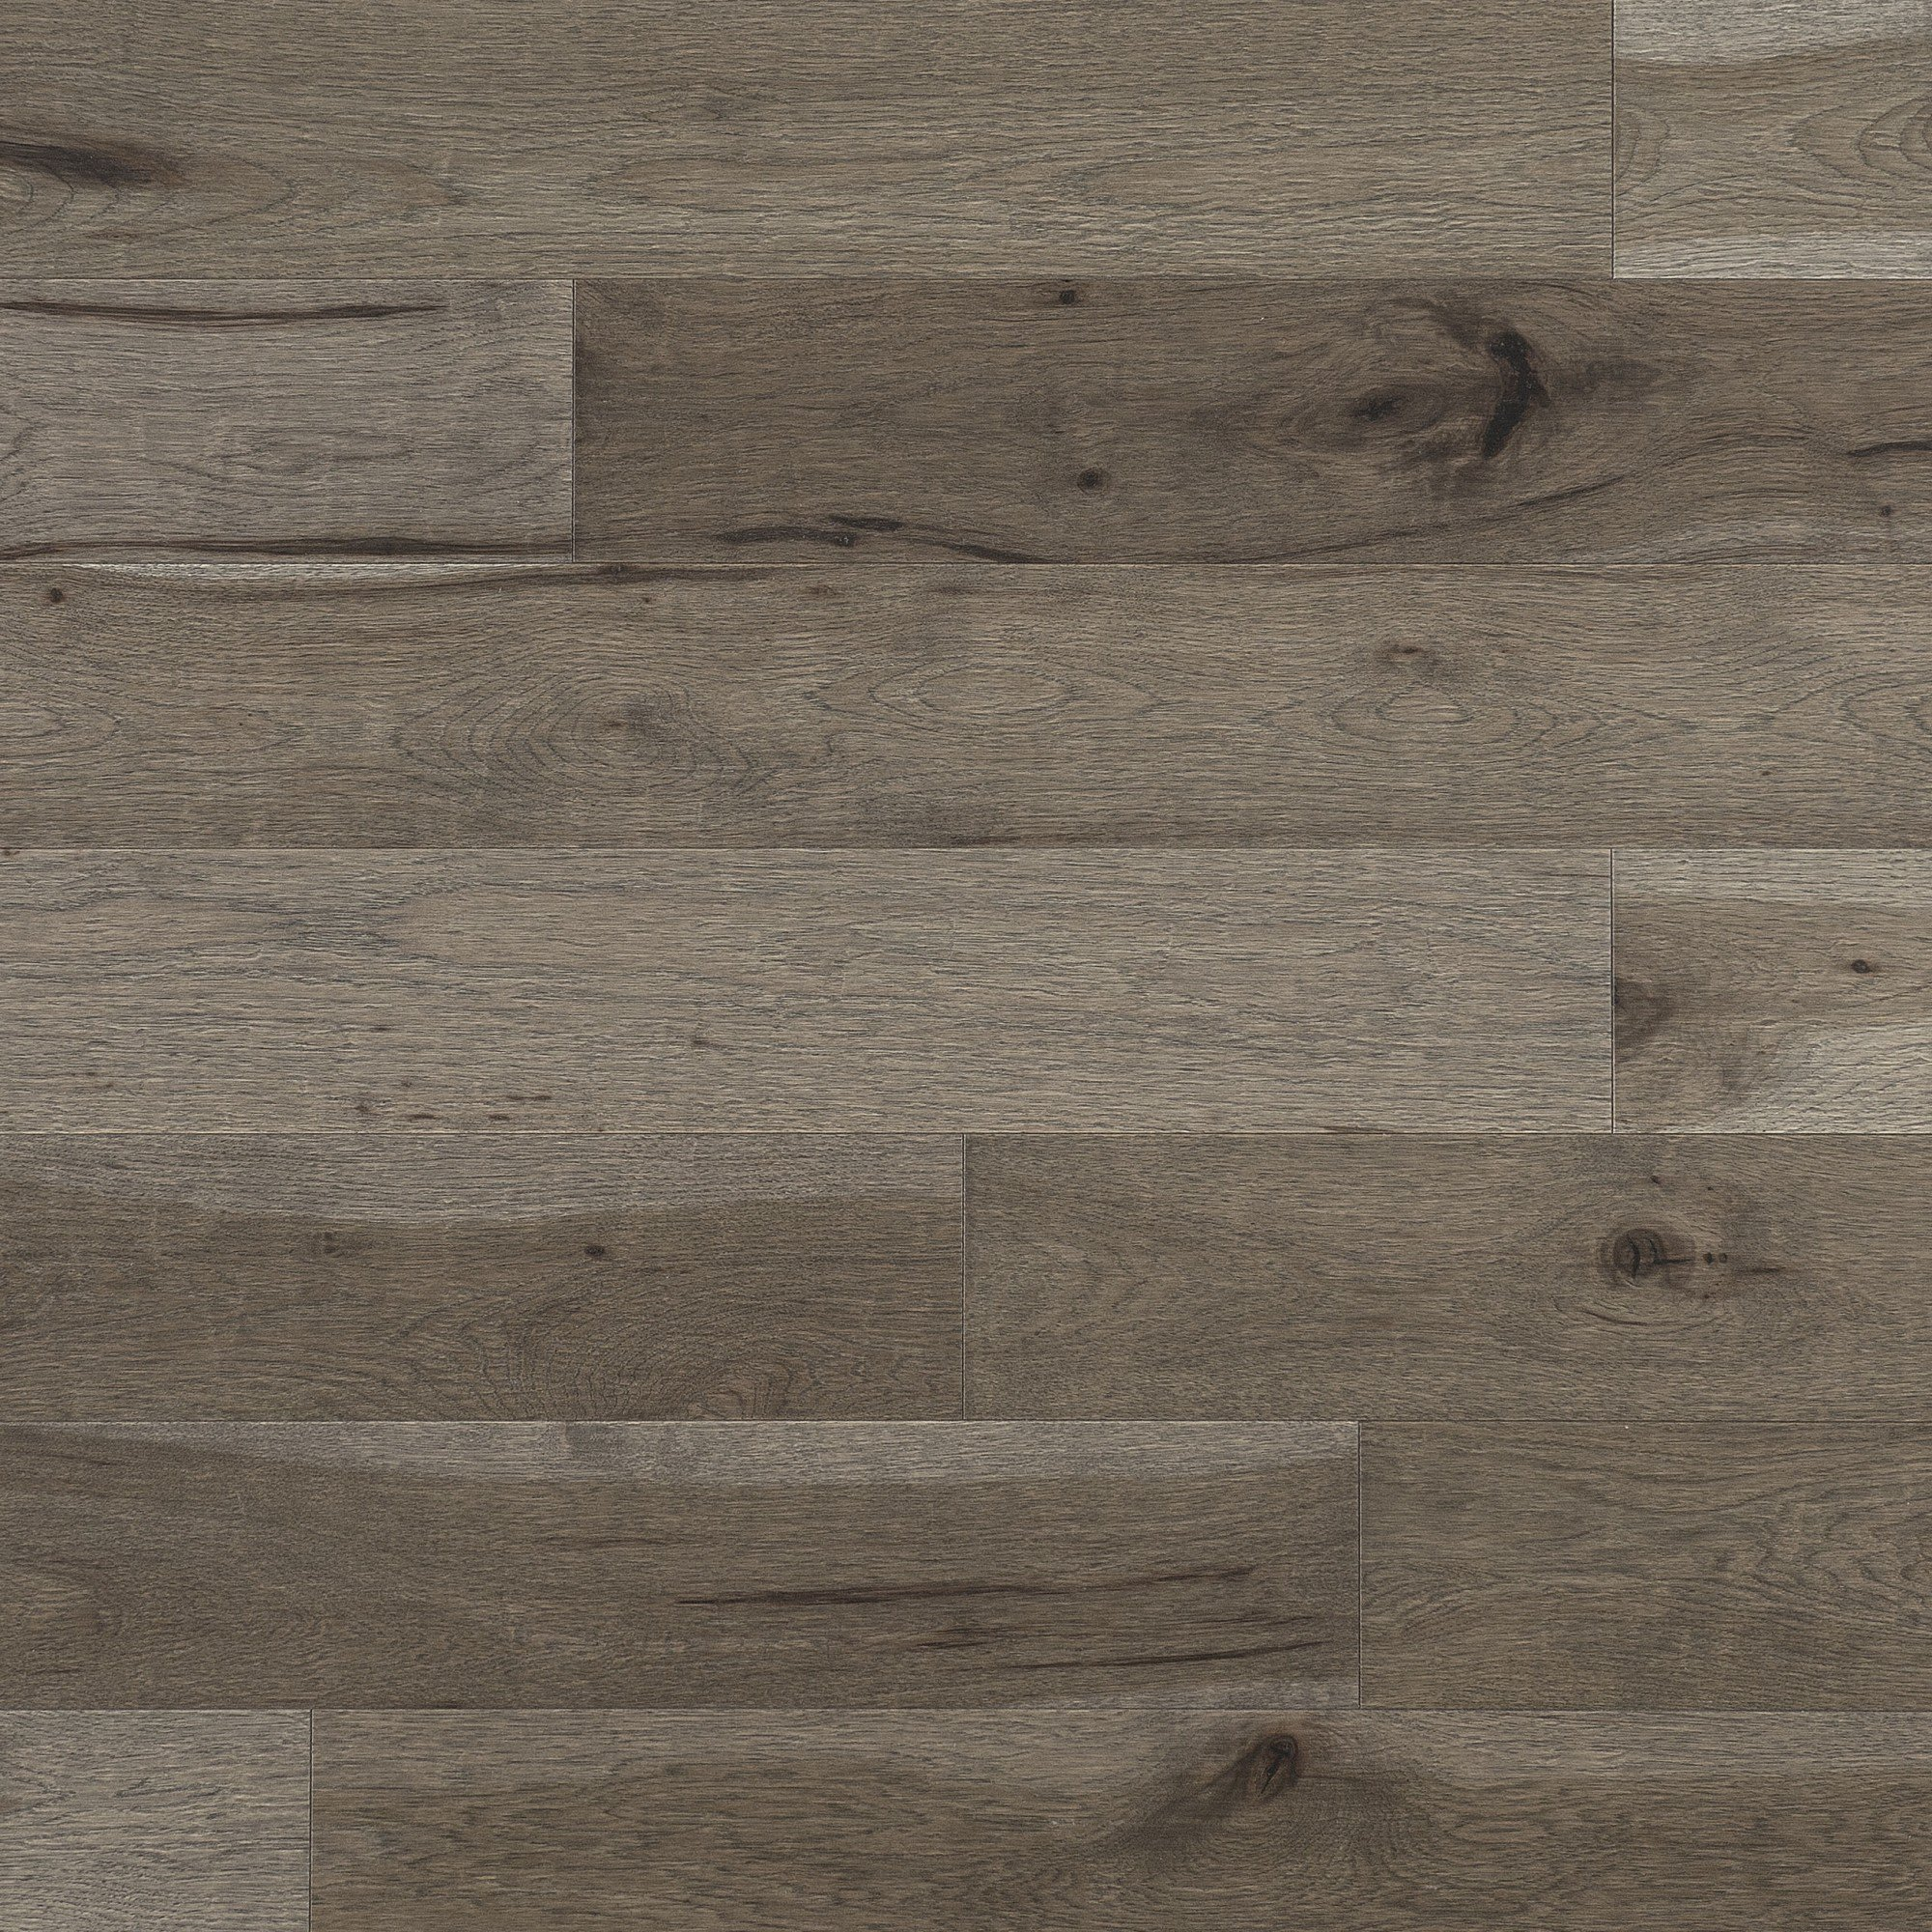 Hickory Barn Wood Caractère - Image plancher